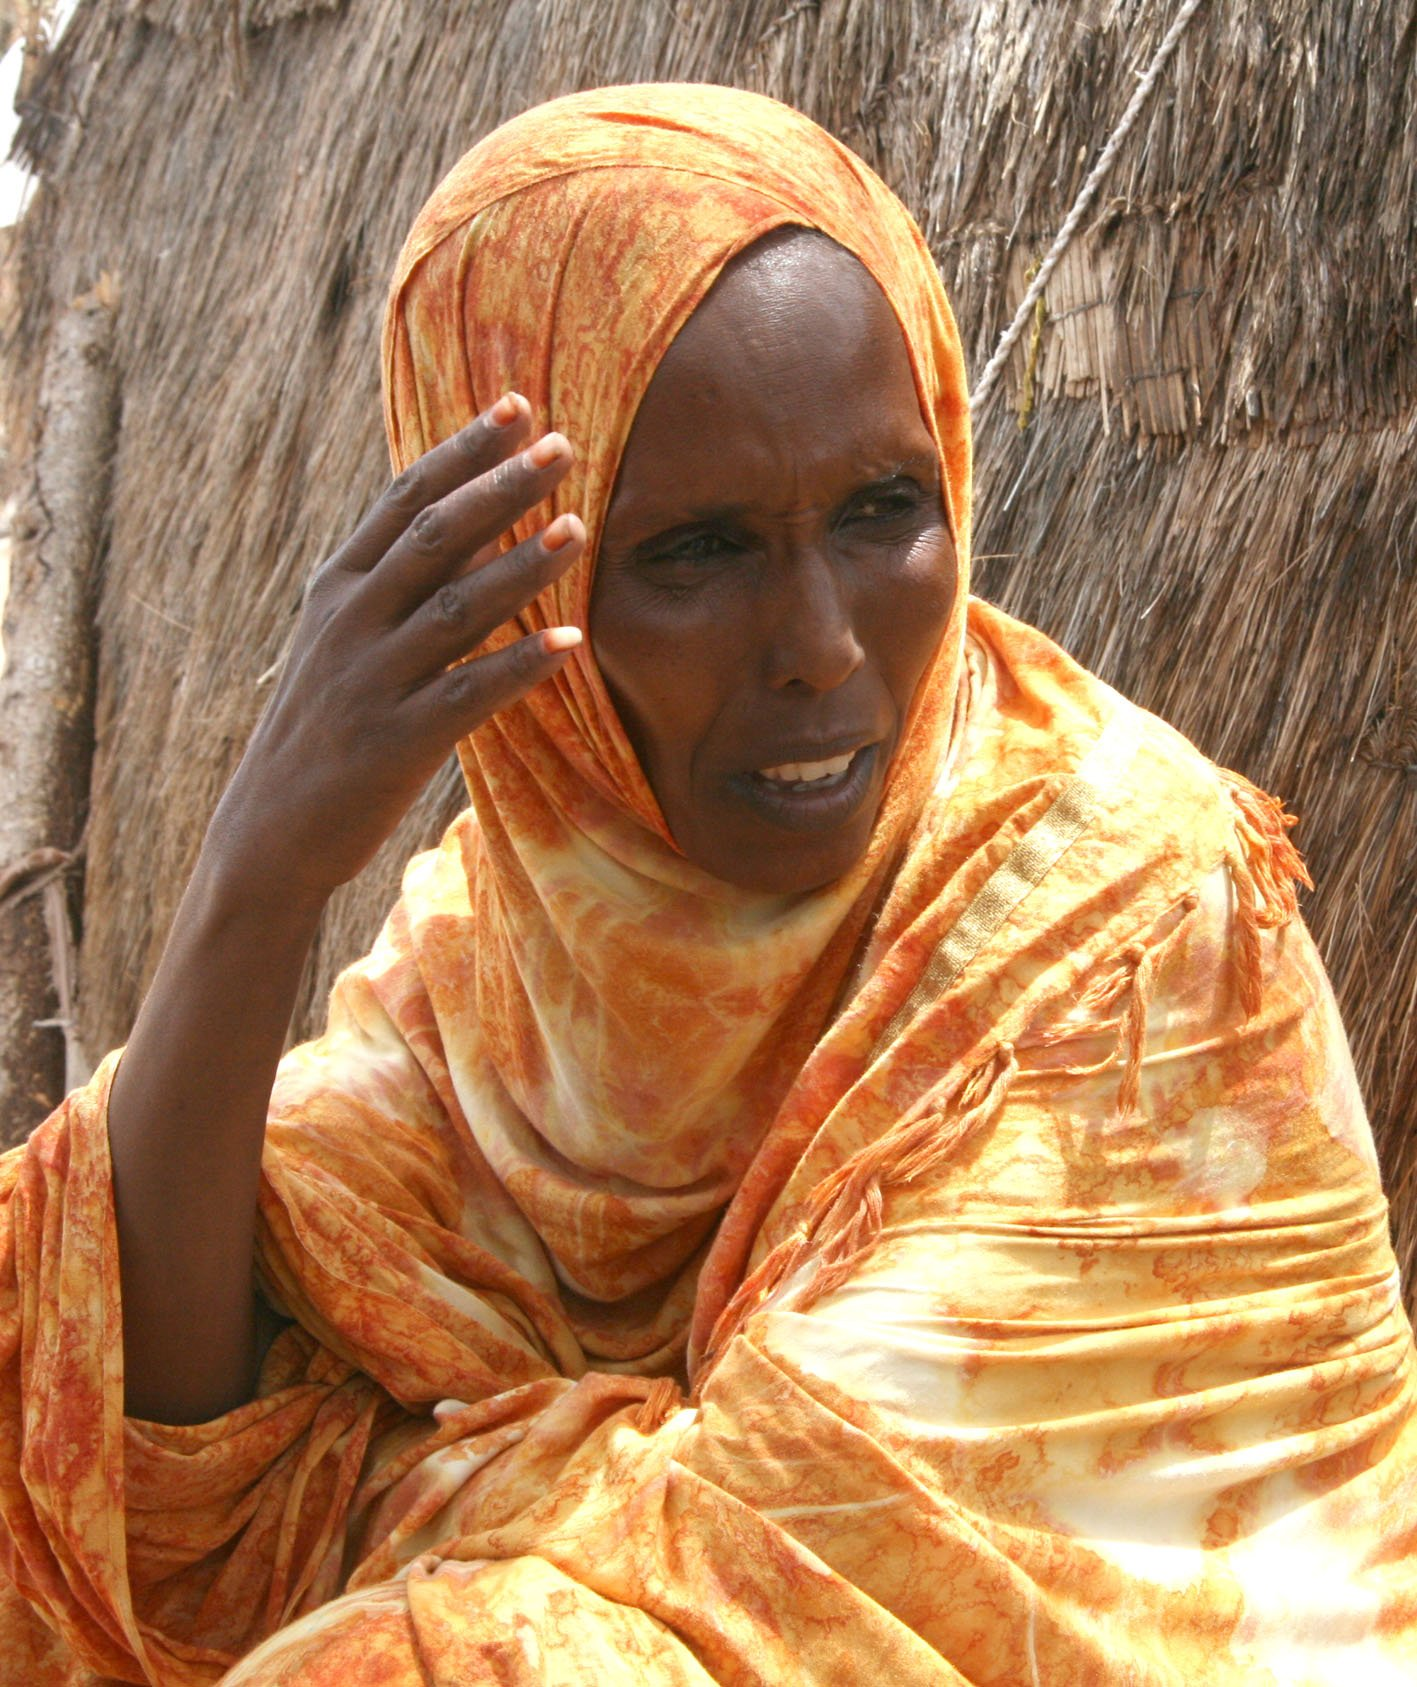 Khadijah Ibrahim is a mother of six and a resident of Wajir East District in Kenya's Northeastern Province. Her family is still feeling the effects of a prolonged drought there despite the respite brought on by El-Nino related rains. A lack of pasture m